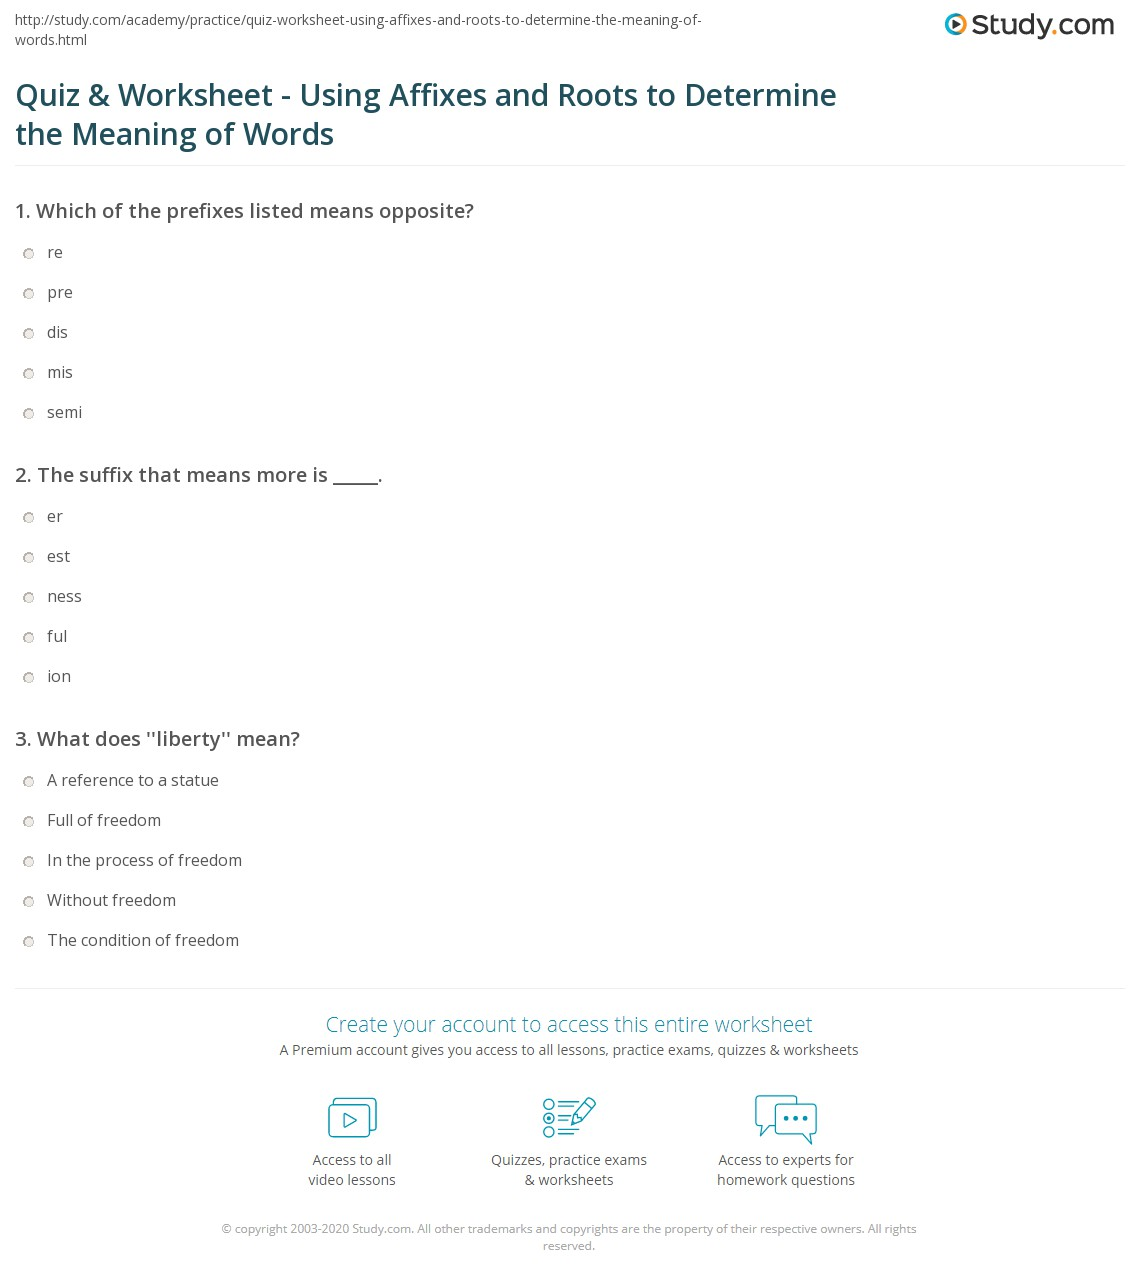 hight resolution of Quiz \u0026 Worksheet - Using Affixes and Roots to Determine the Meaning of Words    Study.com